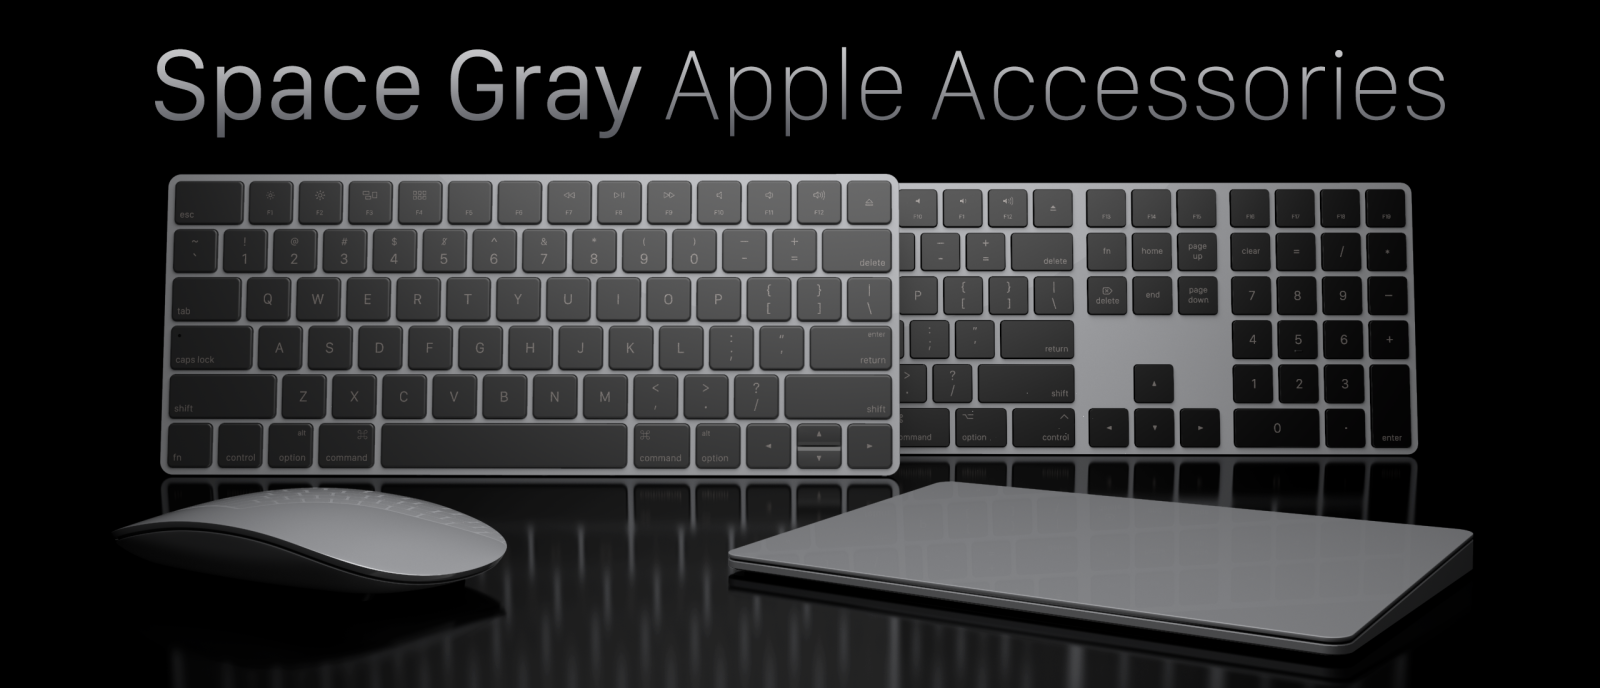 9to5Rewards: Win a Space Gray Apple Magic Keyboard from